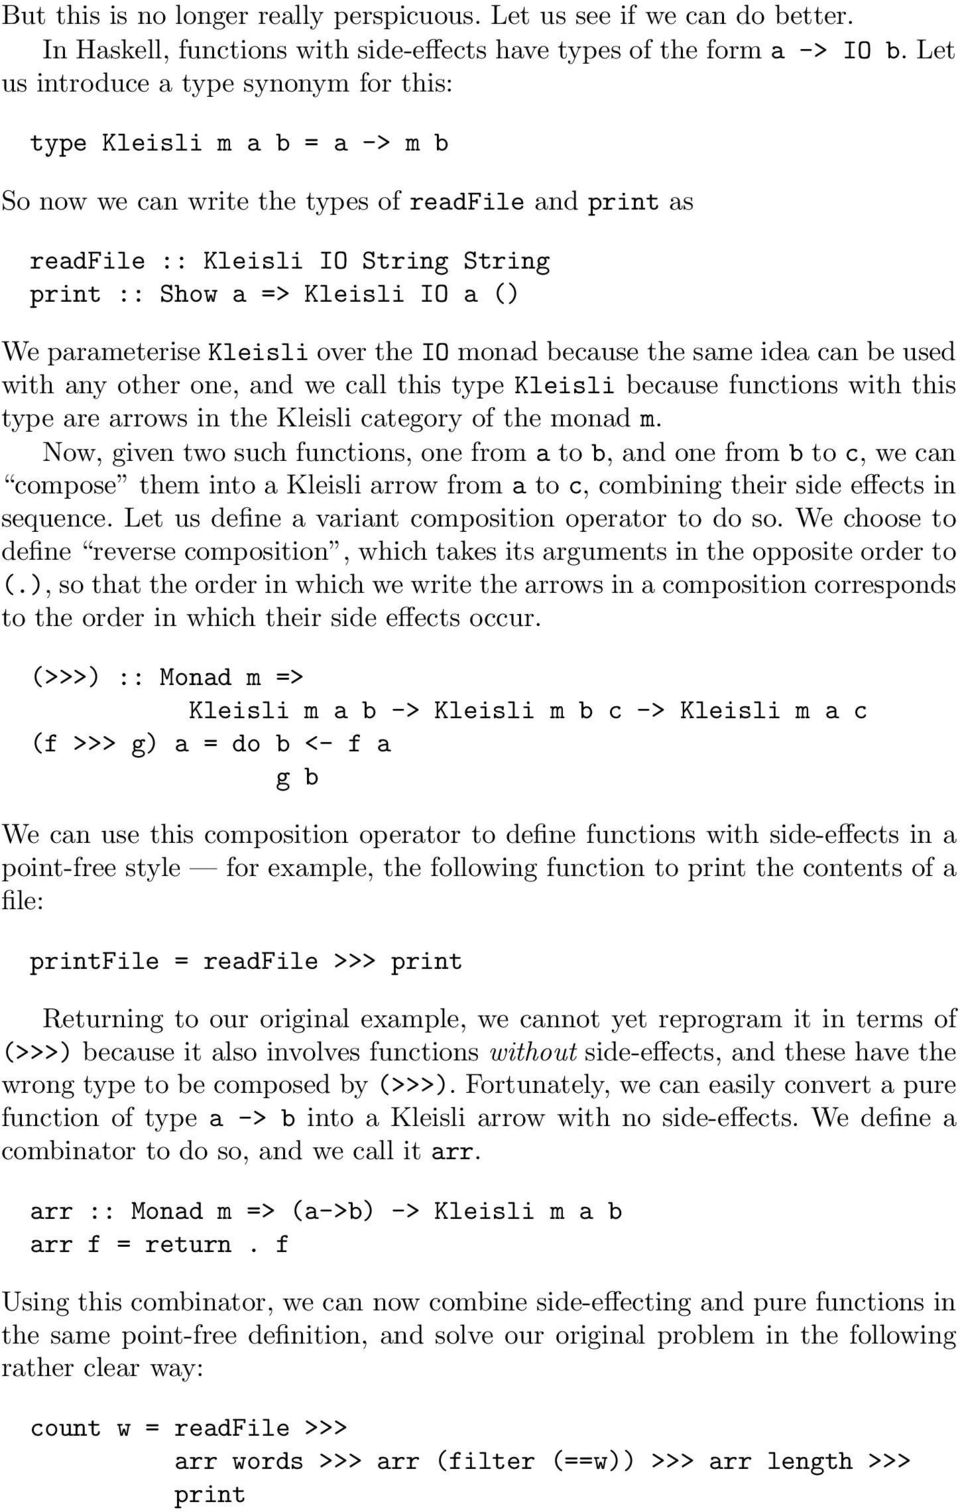 We parameterise Kleisli over the IO monad because the same idea can be used with any other one, and we call this type Kleisli because functions with this type are arrows in the Kleisli category of